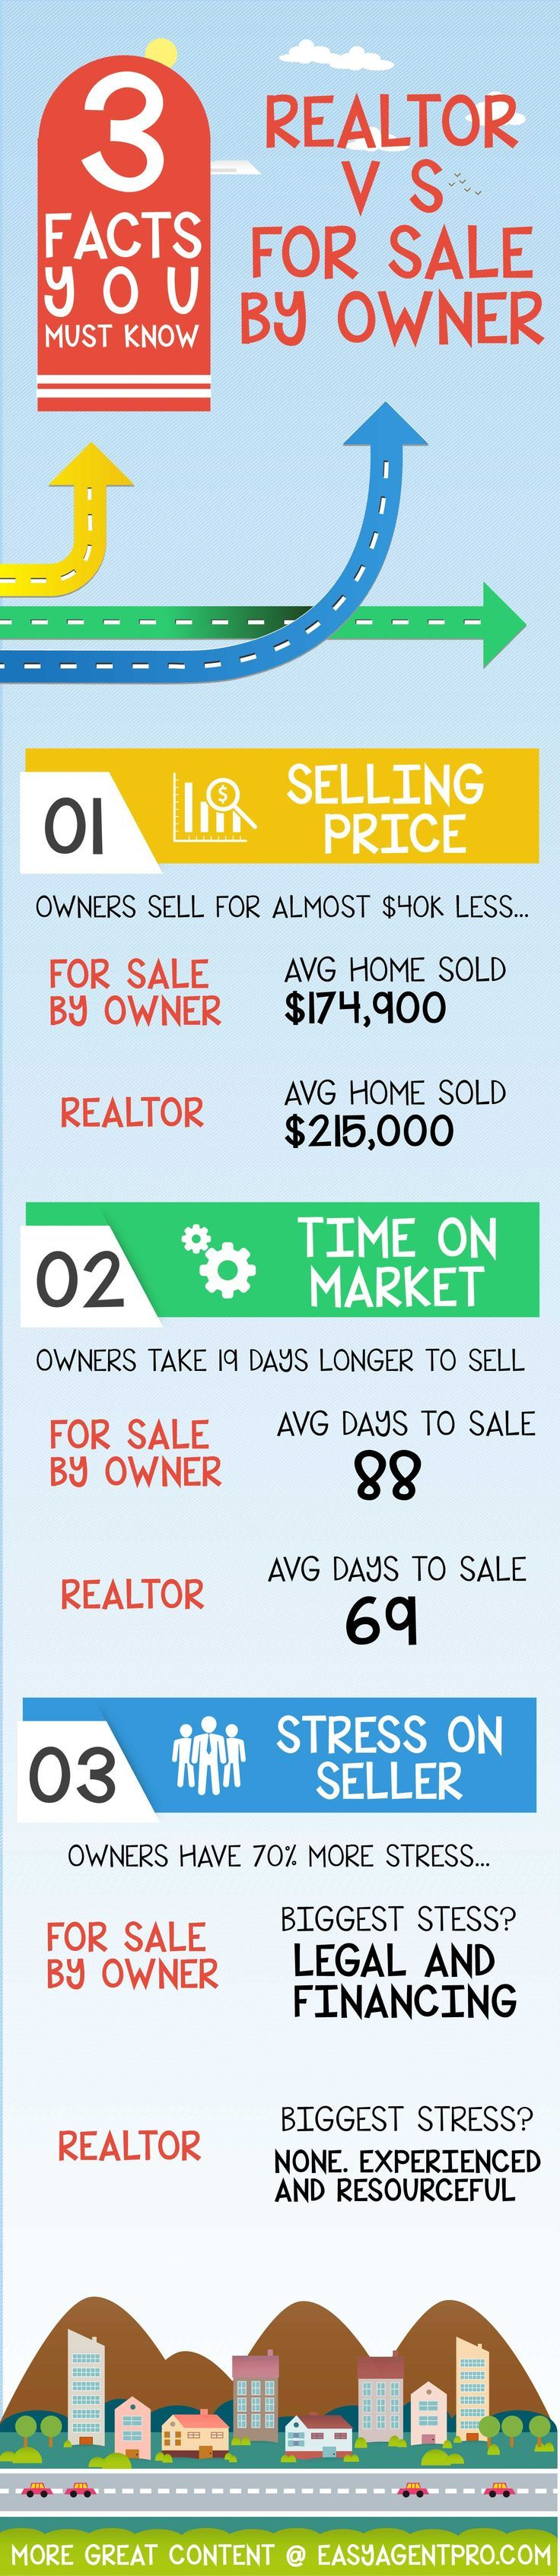 3 Facts You Must Know: Realtors VS FSBO. Are there differences? Does a real estate pro help? This infographic shows it all. Click to share with your network today! #realtor #realestate